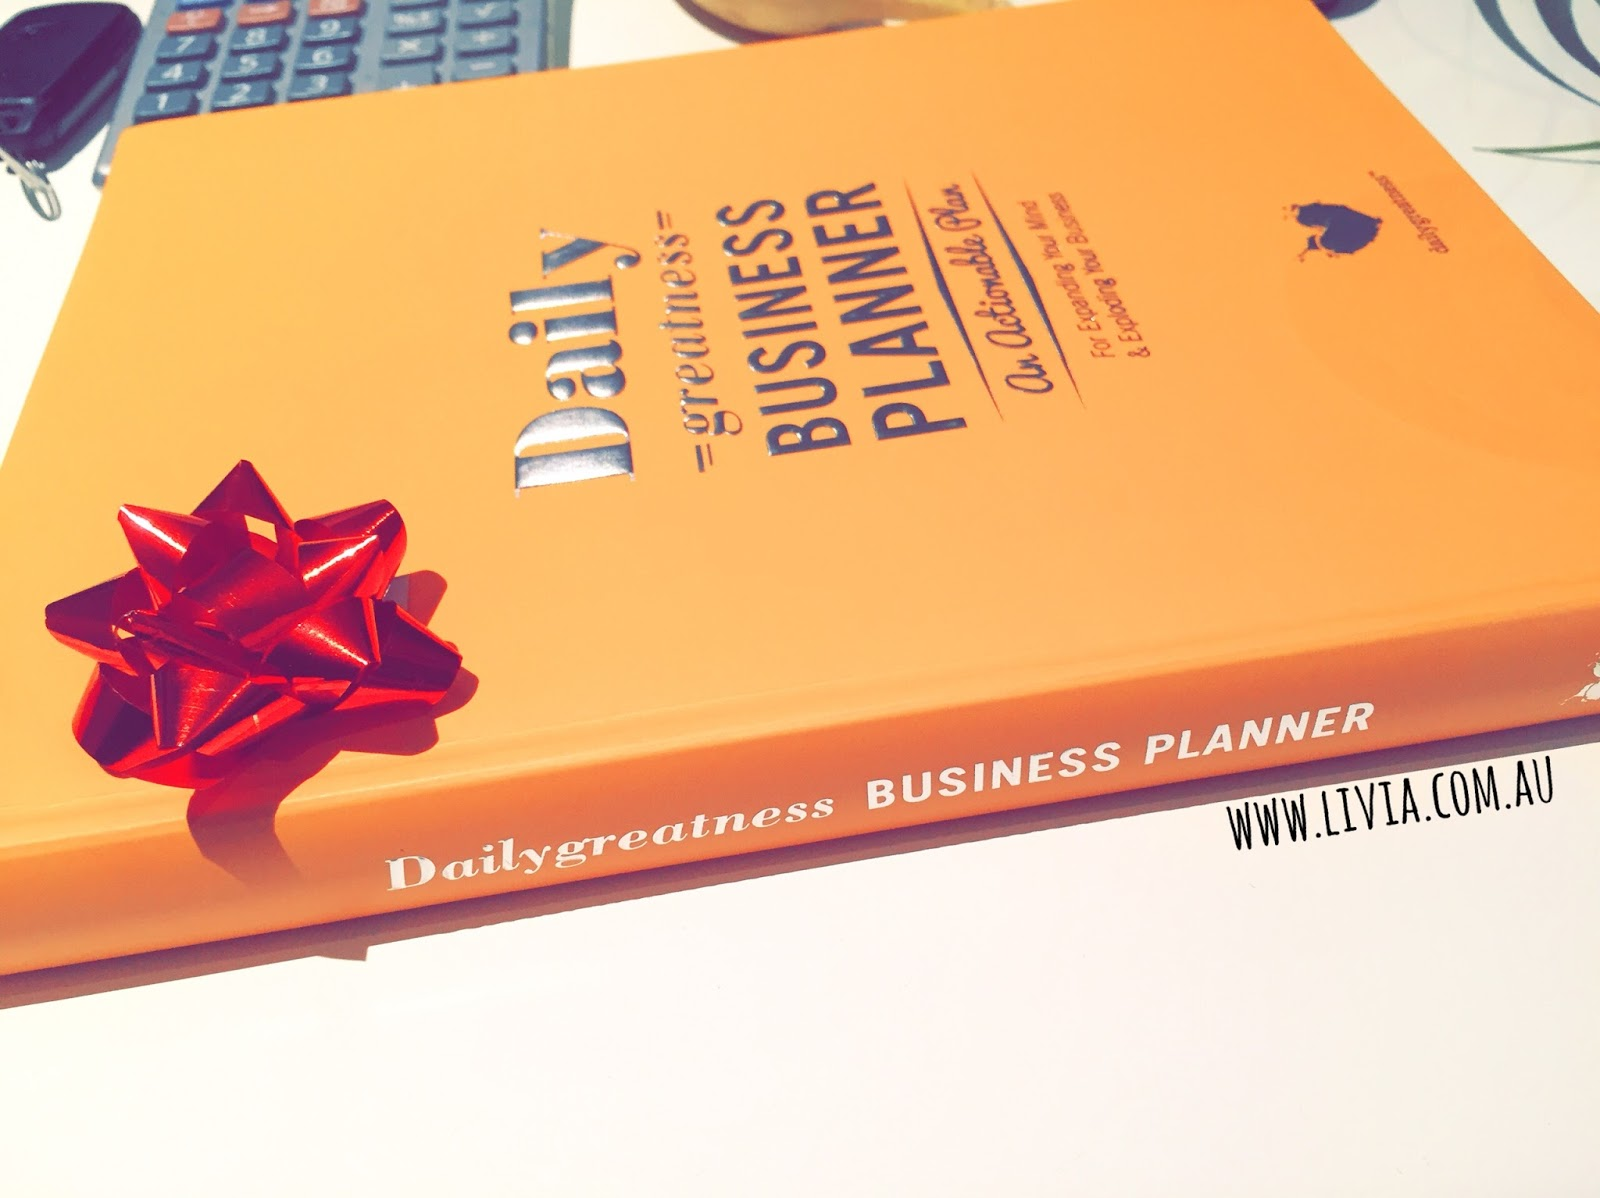 dailygreatness business planner